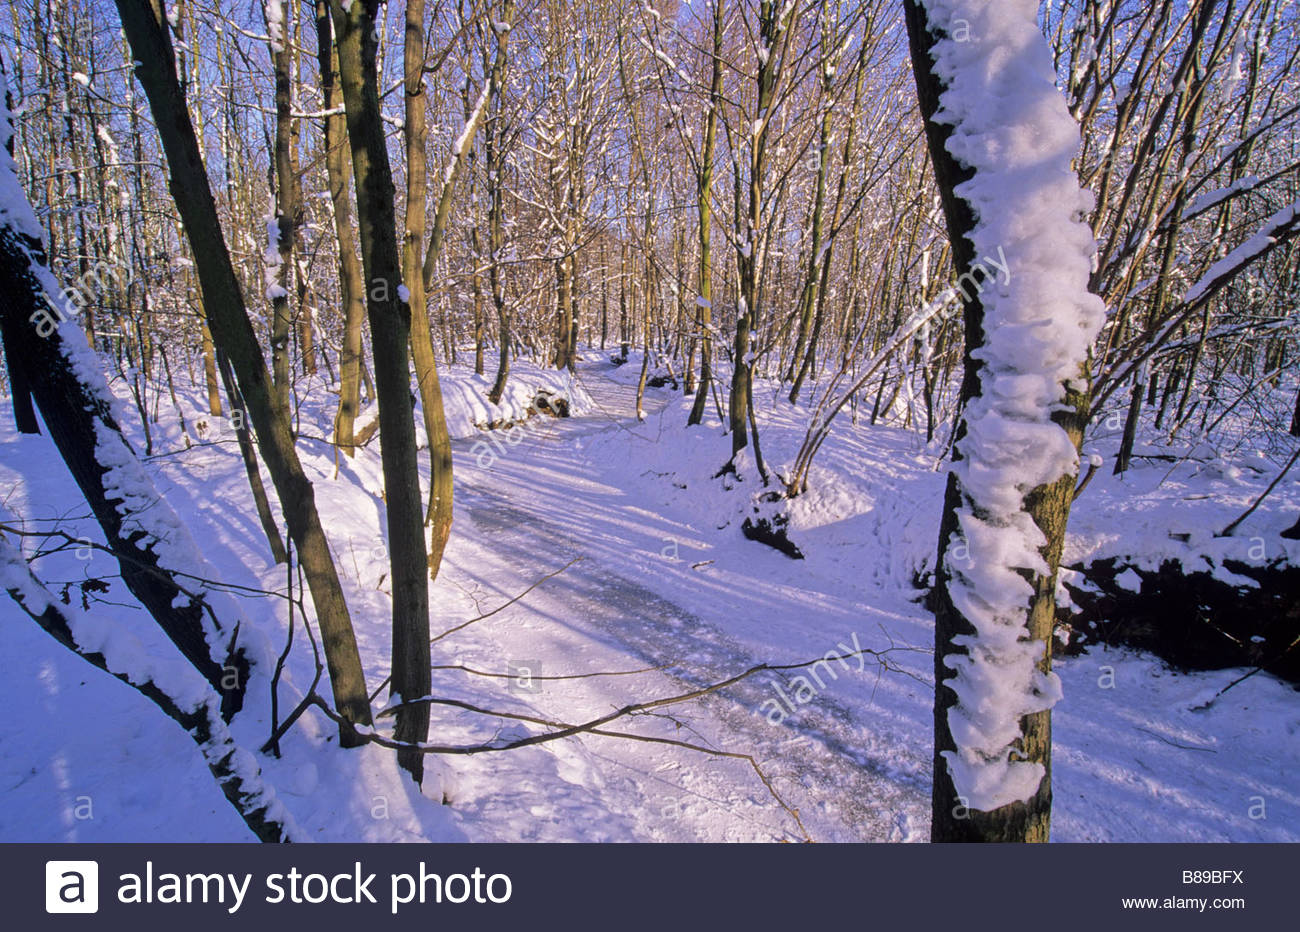 winter landscape forest river Germany Winterwald - Stock Image